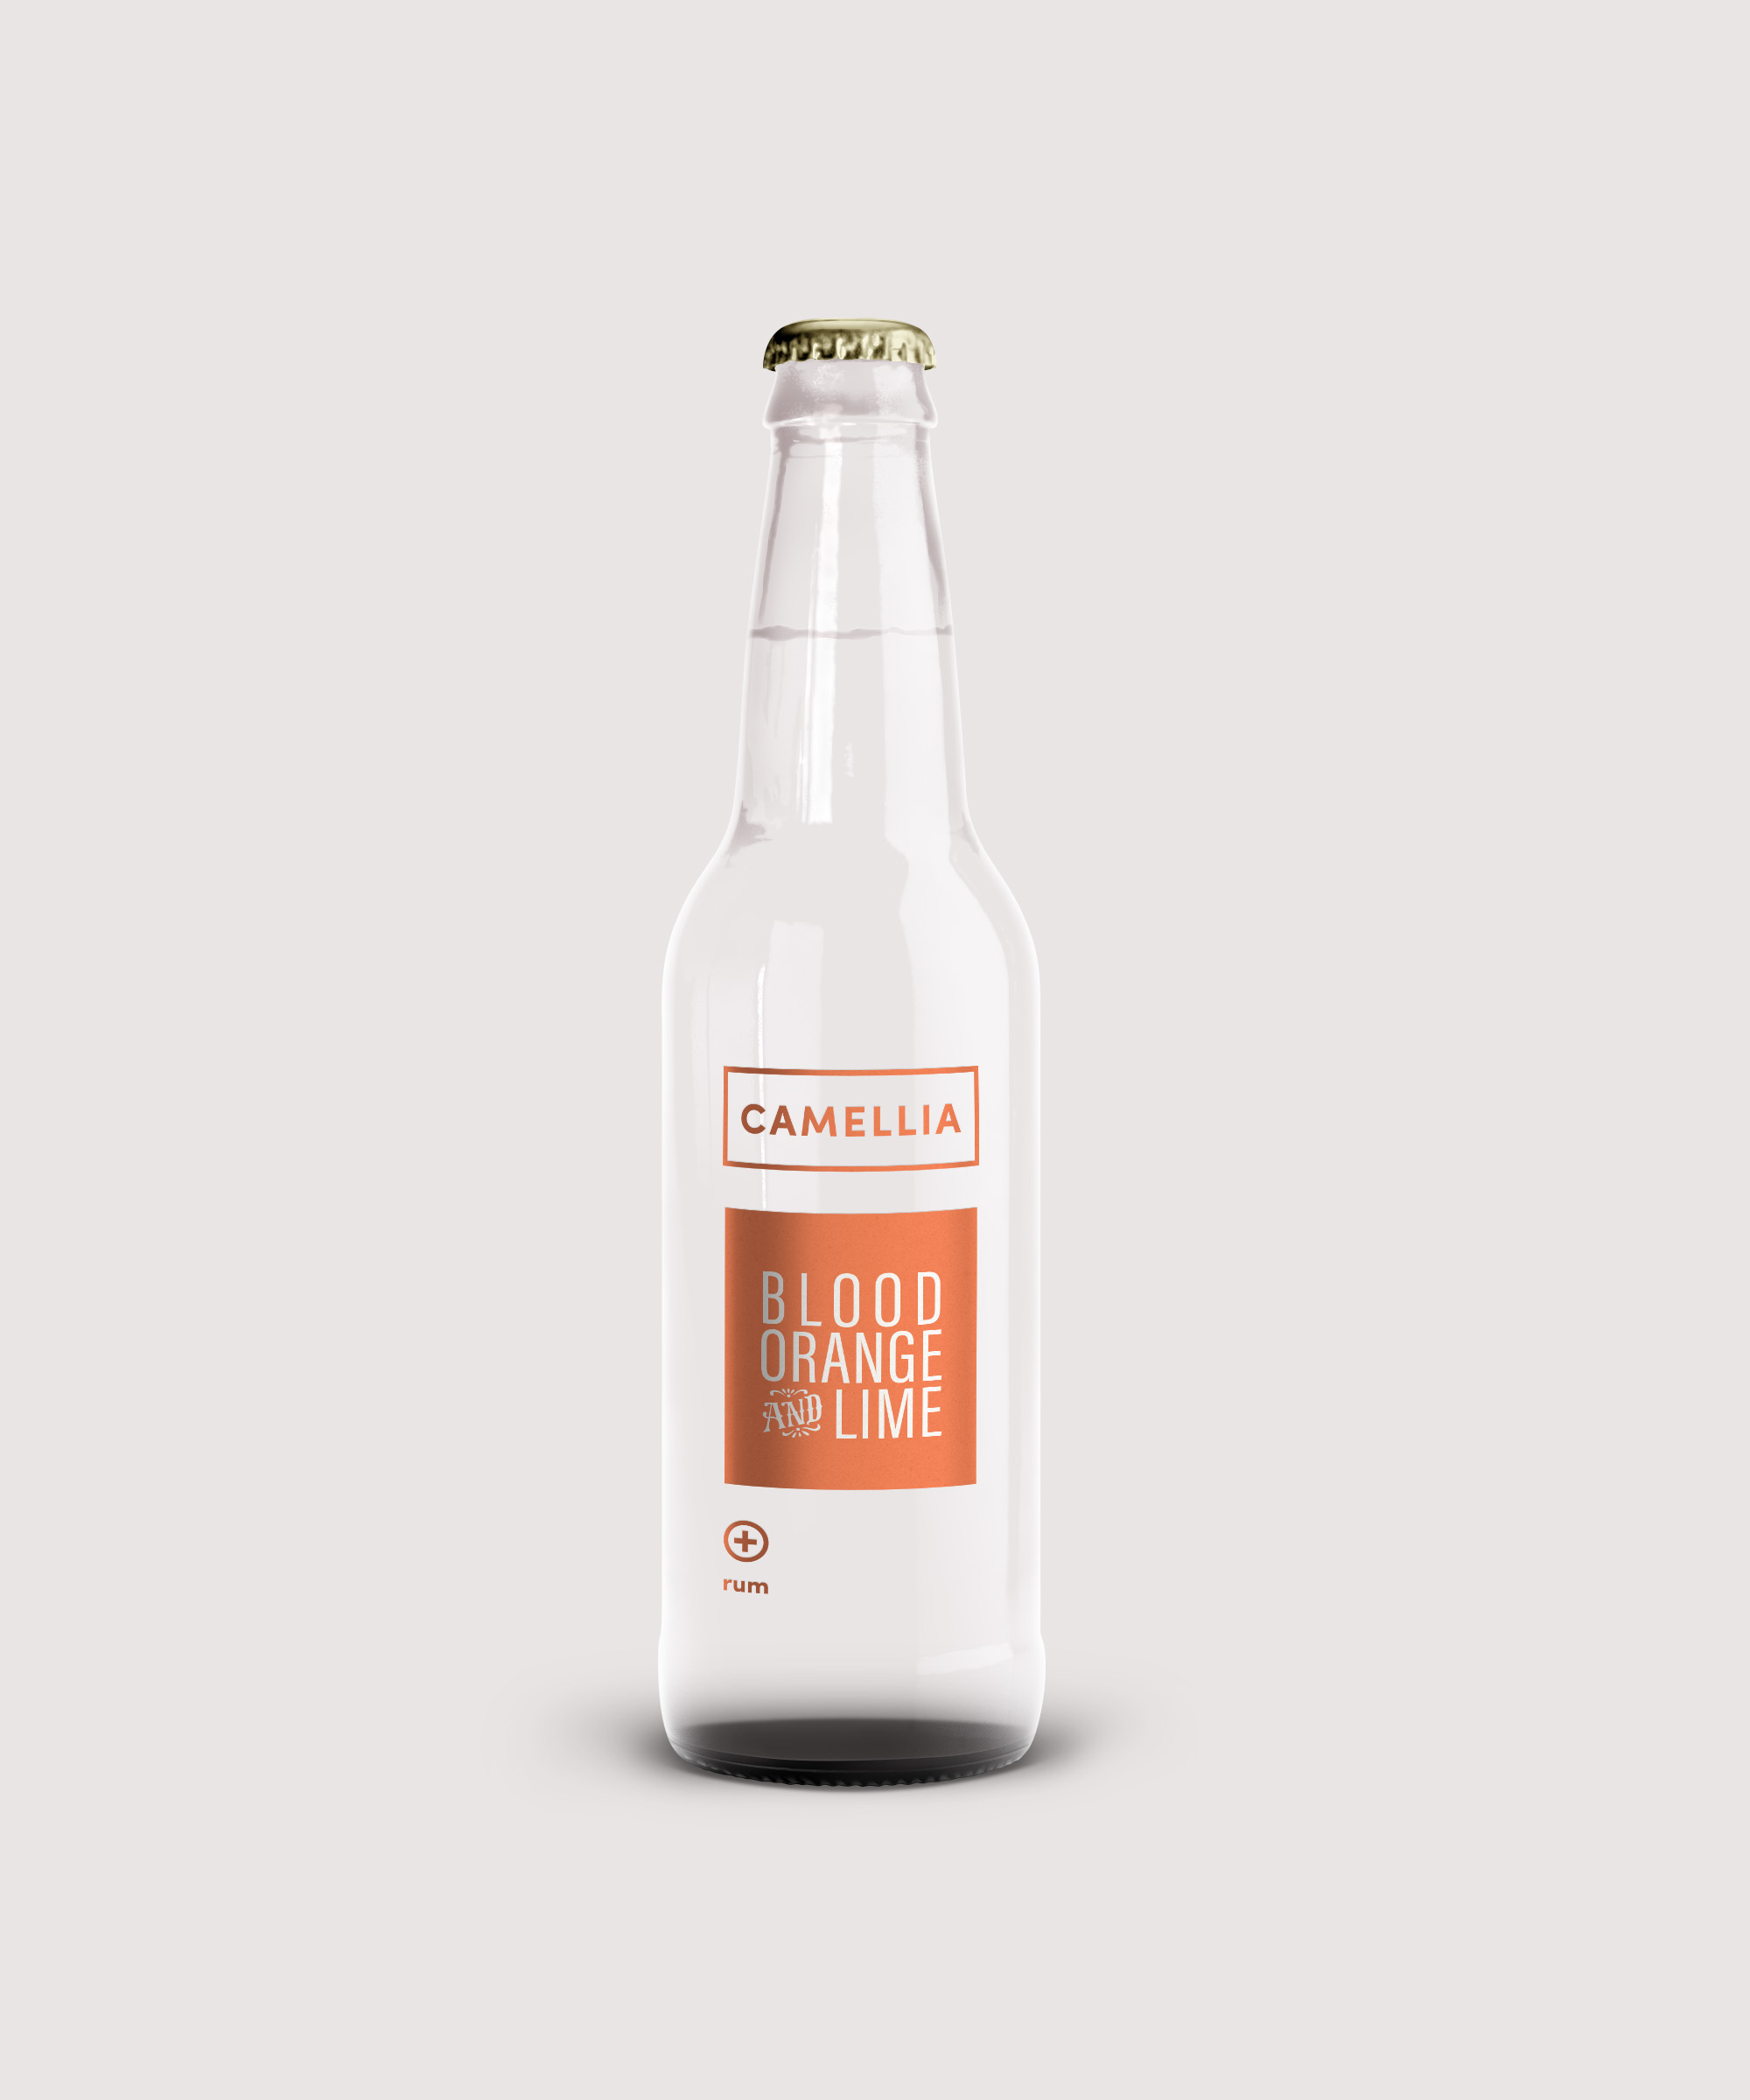 Camellia  is a range of soda brands aimed towards cocktail-lovers, with the specific purpose of being used as mixers for alcoholic spirits.